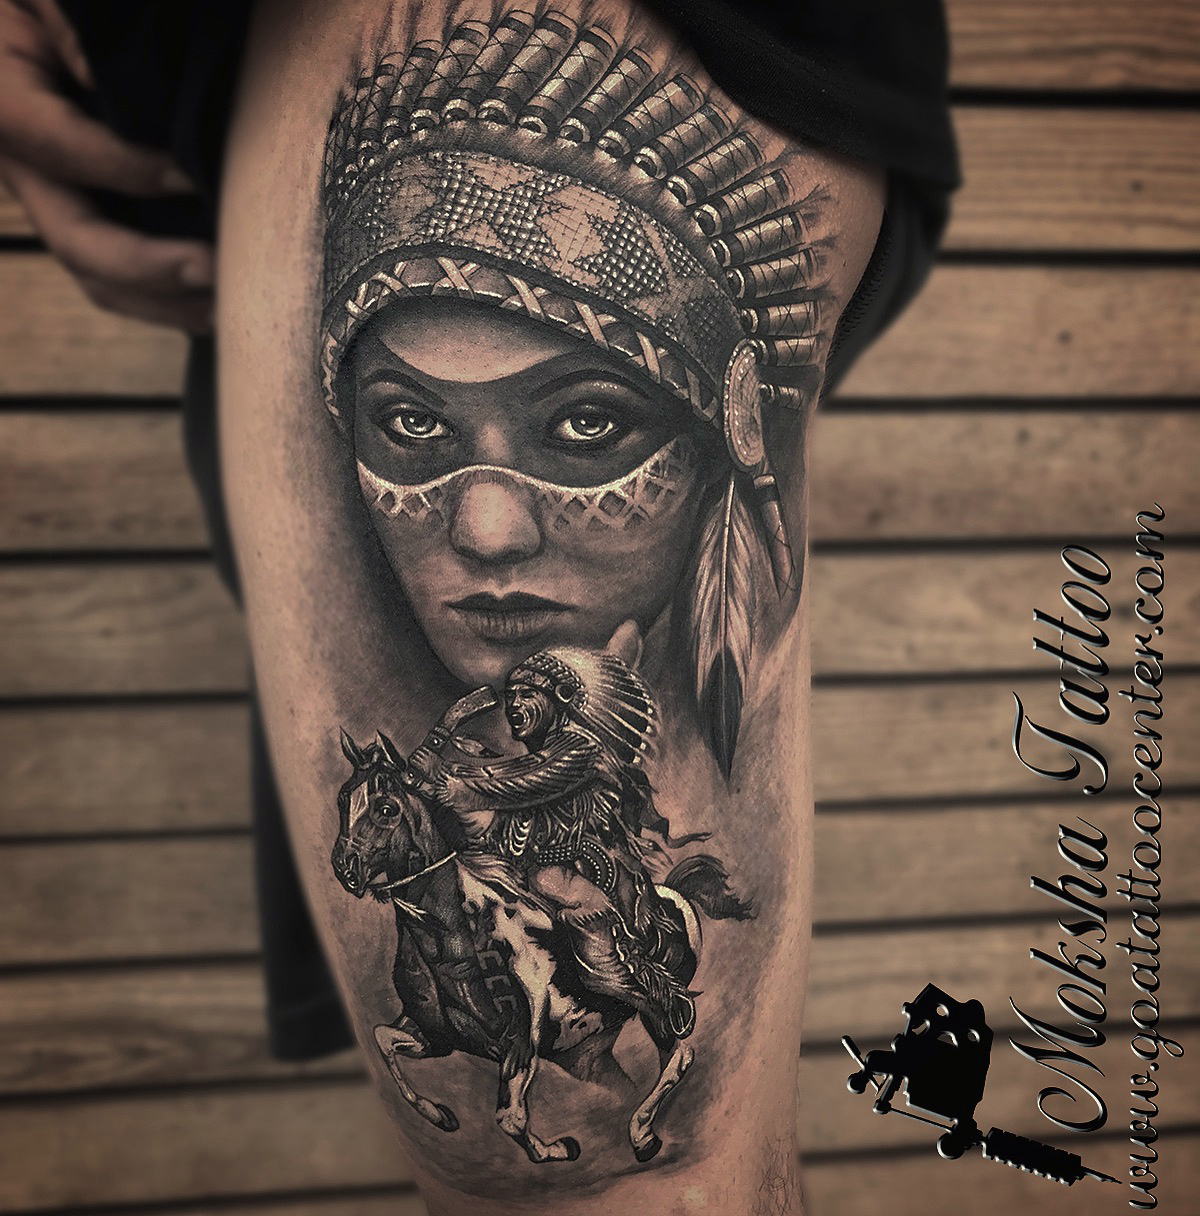 Red Indian Tattoo done by Mukesh Waghela at Moksha Tattoo Studio Goa India.